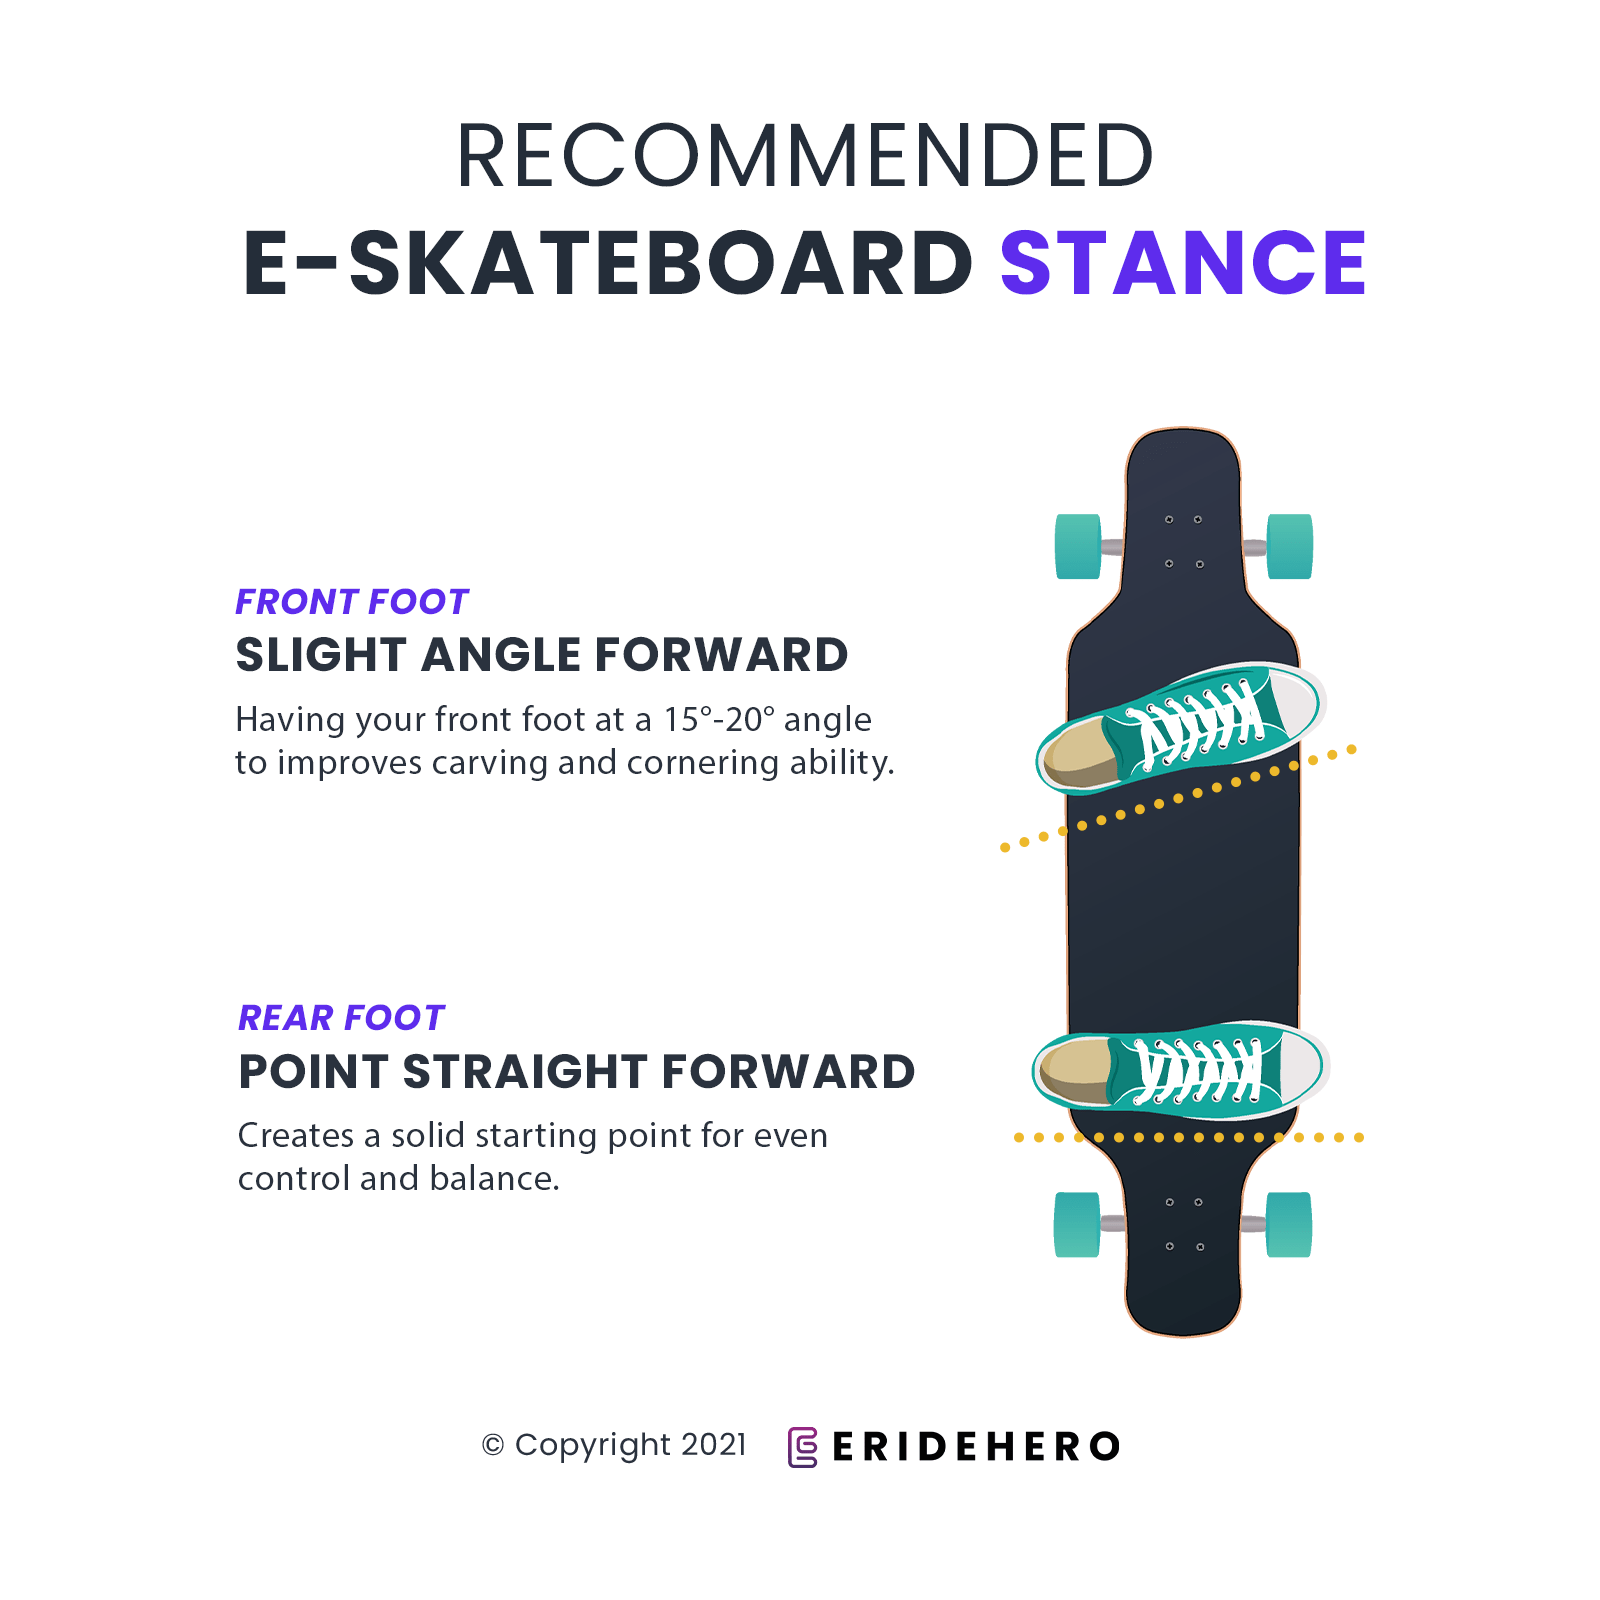 Recommended e-skateboard stance infographic